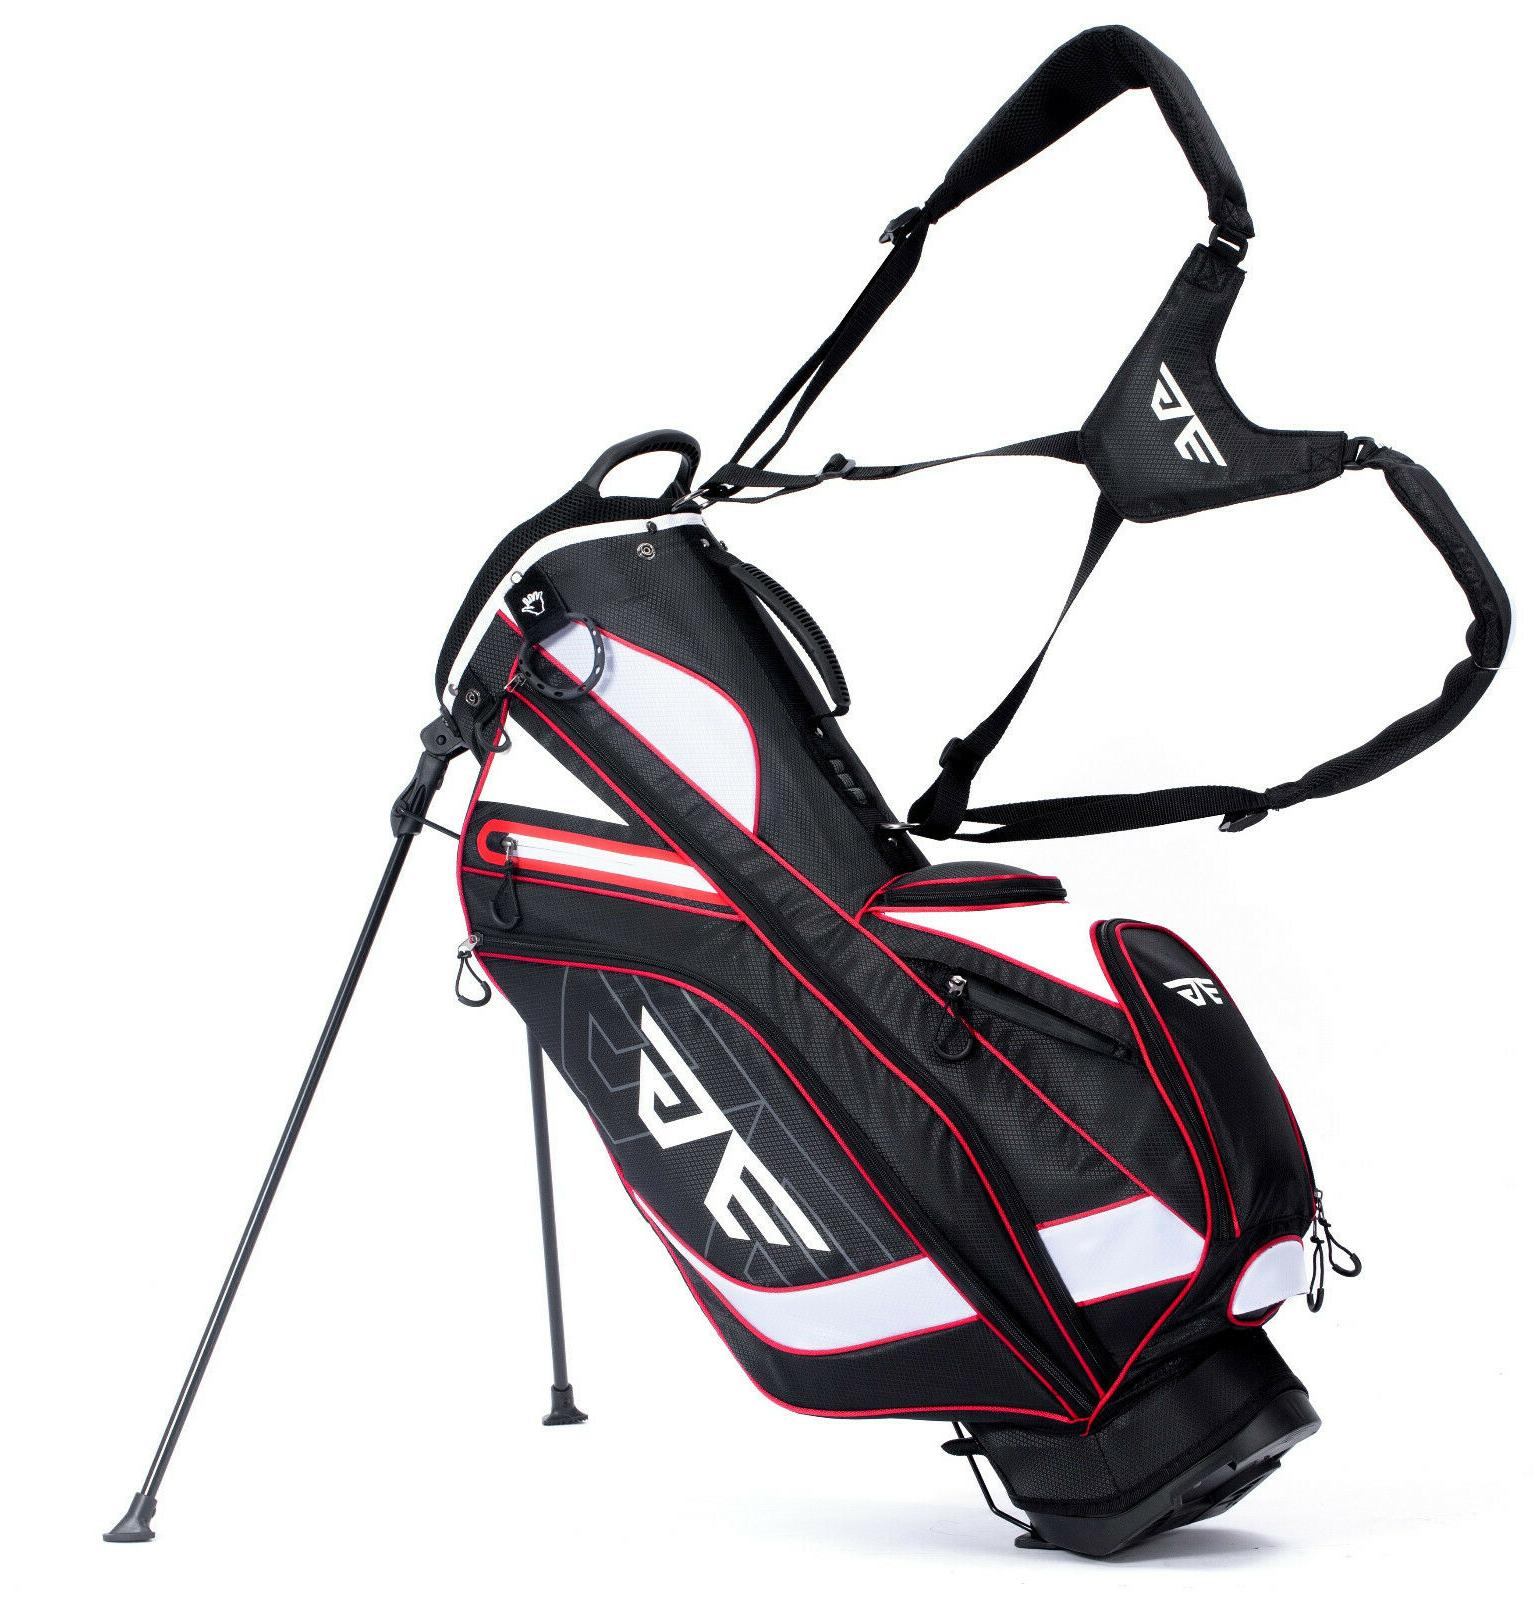 stand bag 8 pocket super light easy